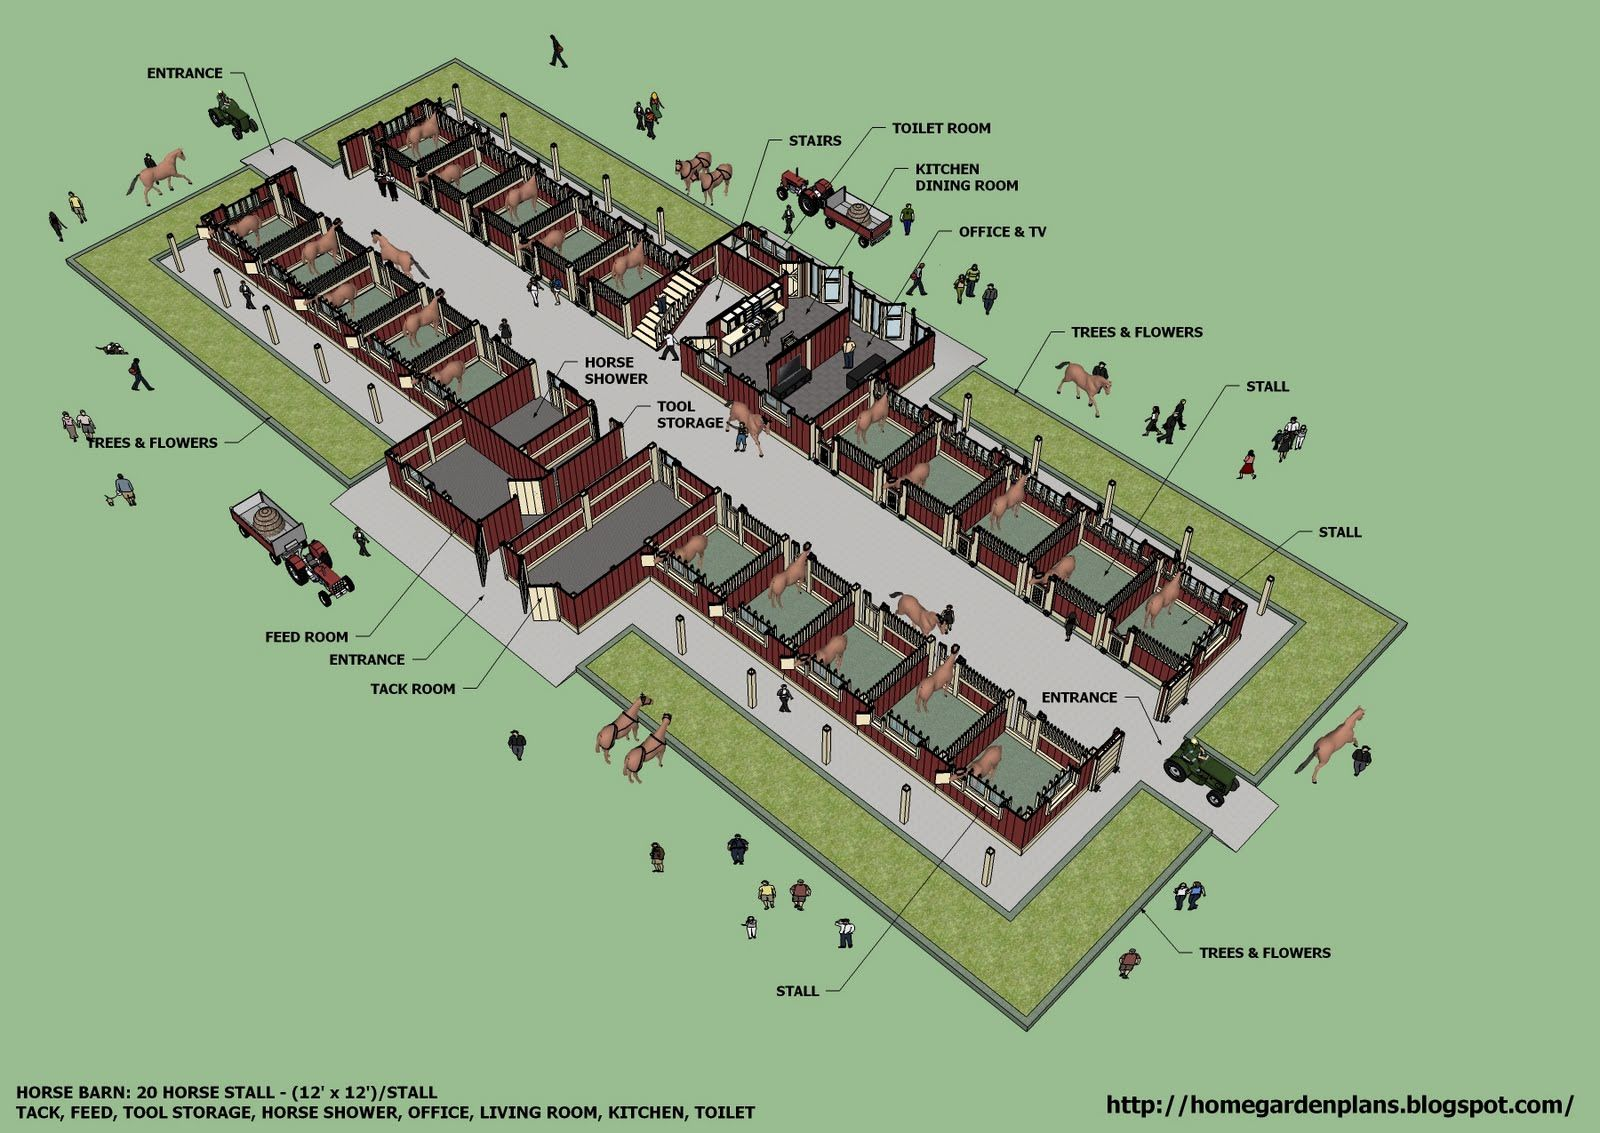 home garden plans b20h large horse barn for 20 horse stall 20 stall - Horse Barn Design Ideas